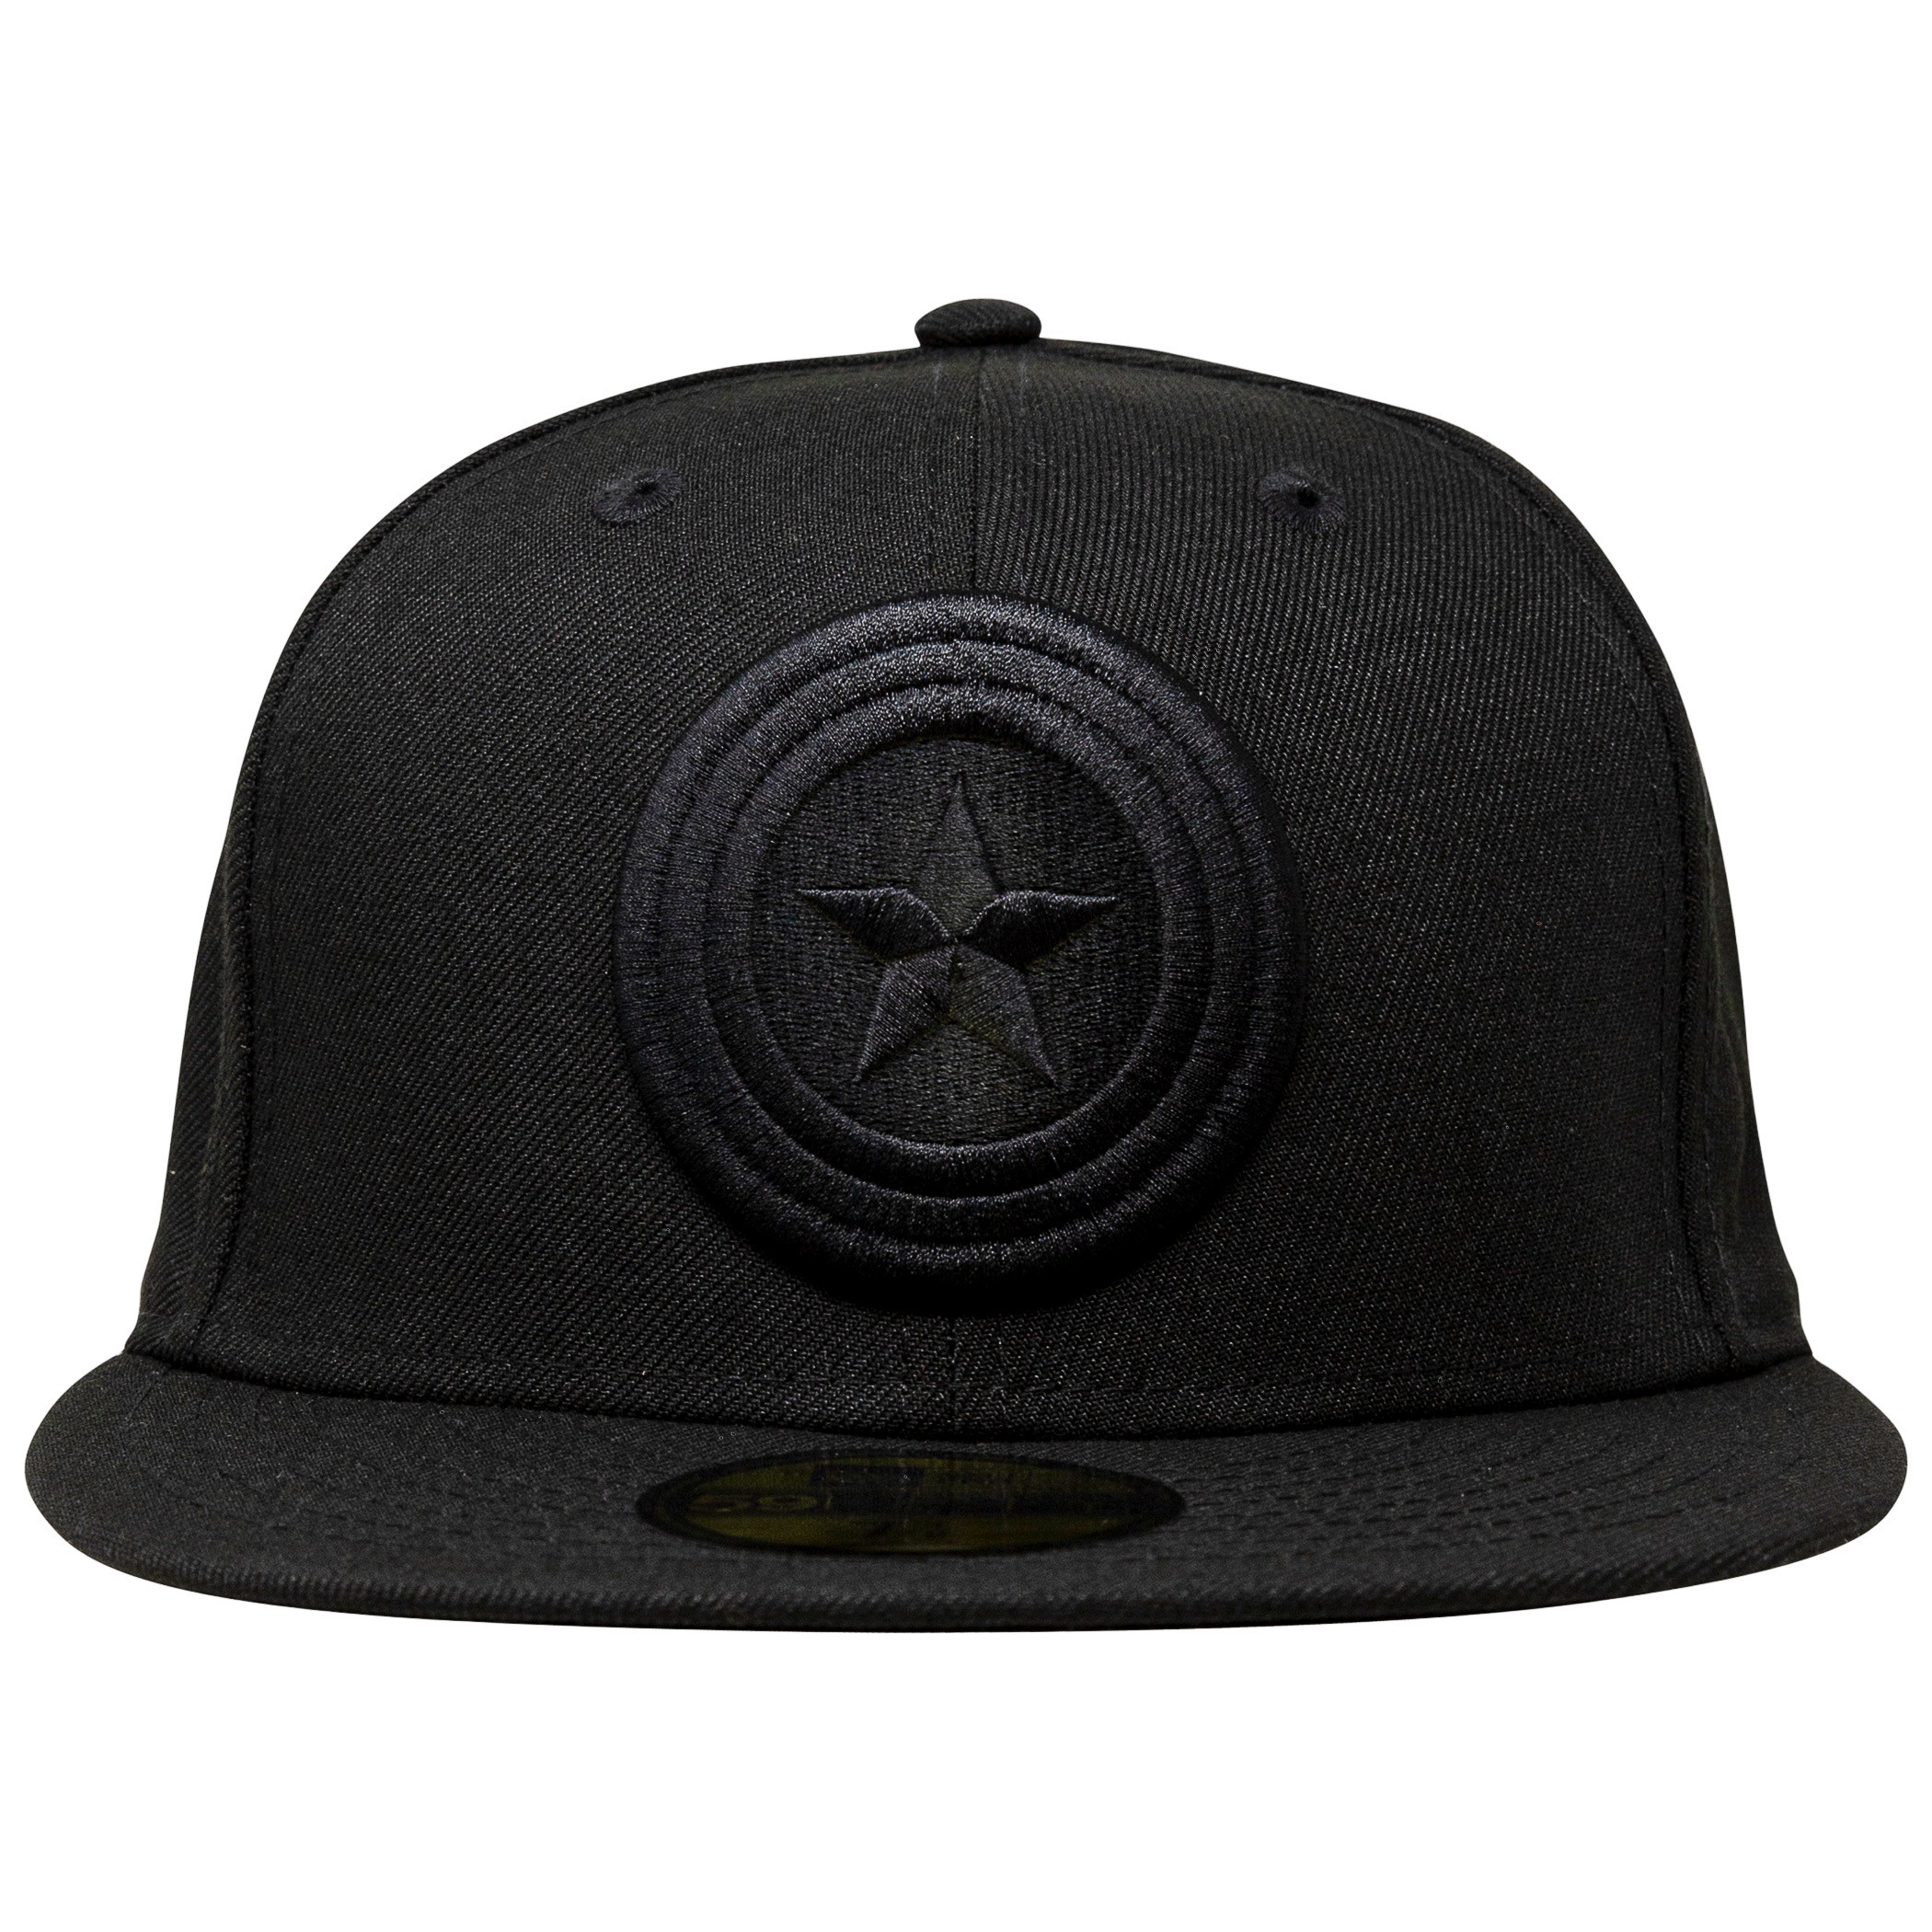 Long Live Captain America Memorial MCU New Era 59Fifty Fitted Hat